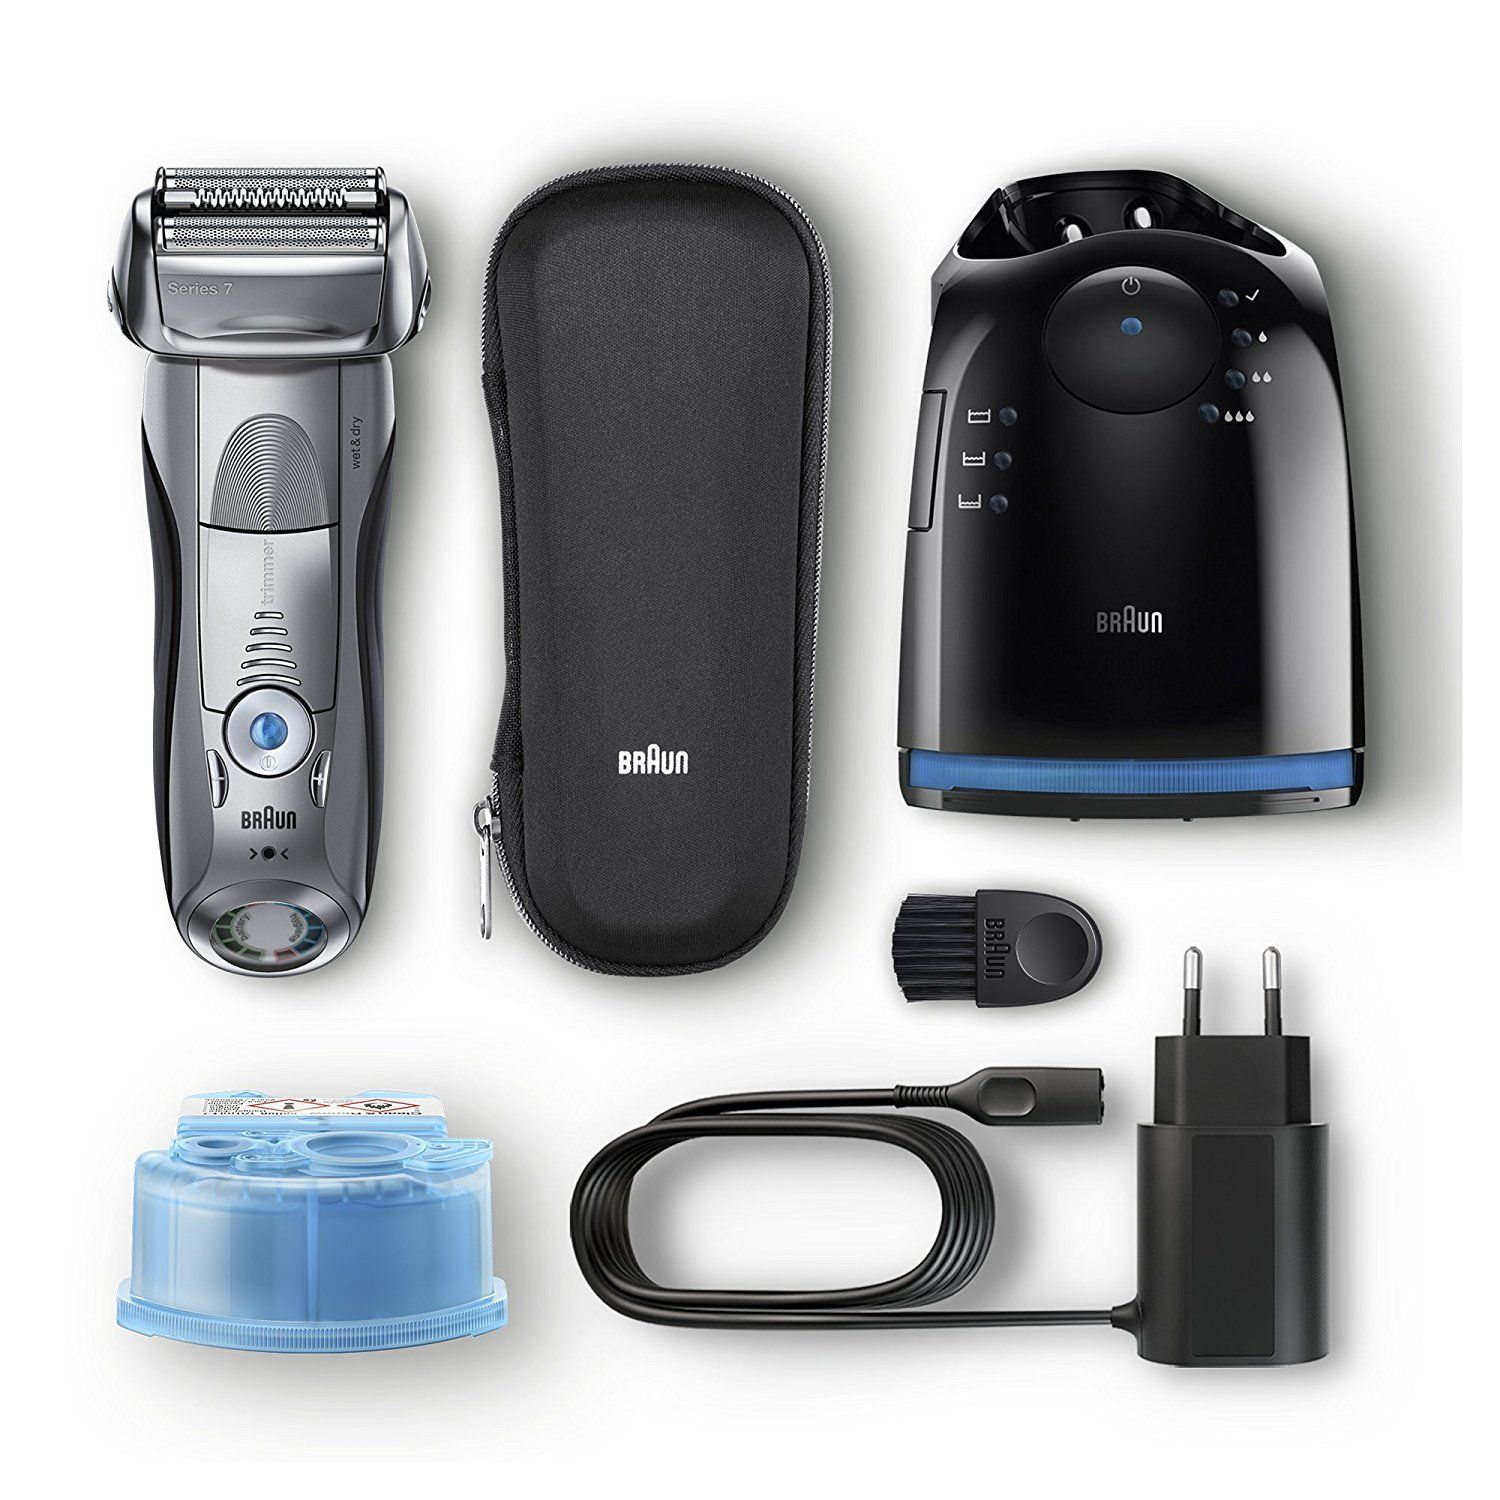 Braun Series 7 7898cc Men S Electric Foil Shaver Wet And Dry Pop Up Precision Trimmer Rechargeable And Cordless Razor With Clean And Charge Station And Travel Case Silver Best Electric